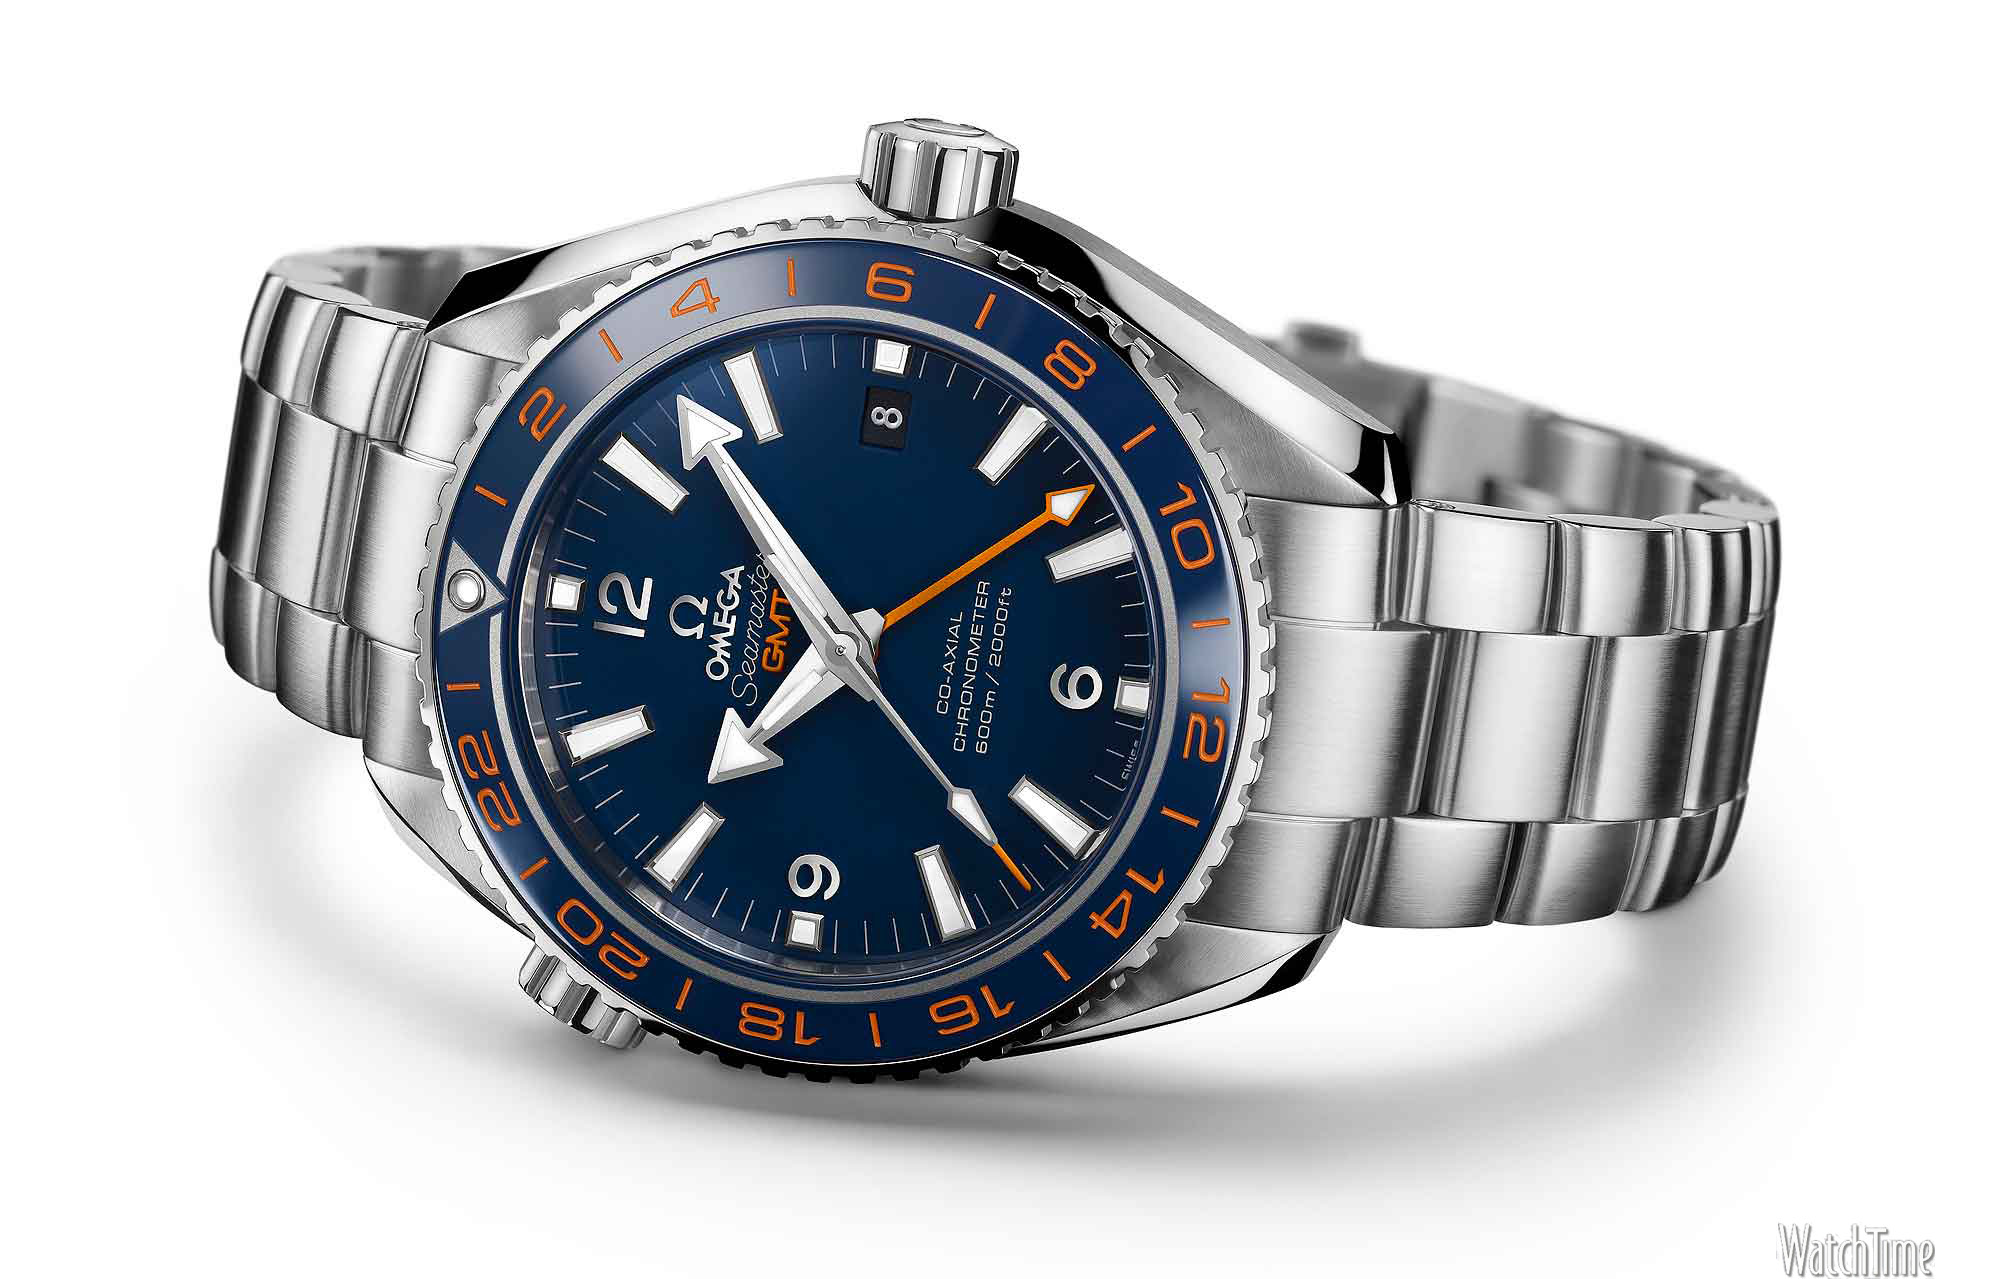 Omega seamaster planet ocean 600m goodplanet watchtime usa 39 s no 1 watch magazine for Omega watch seamaster